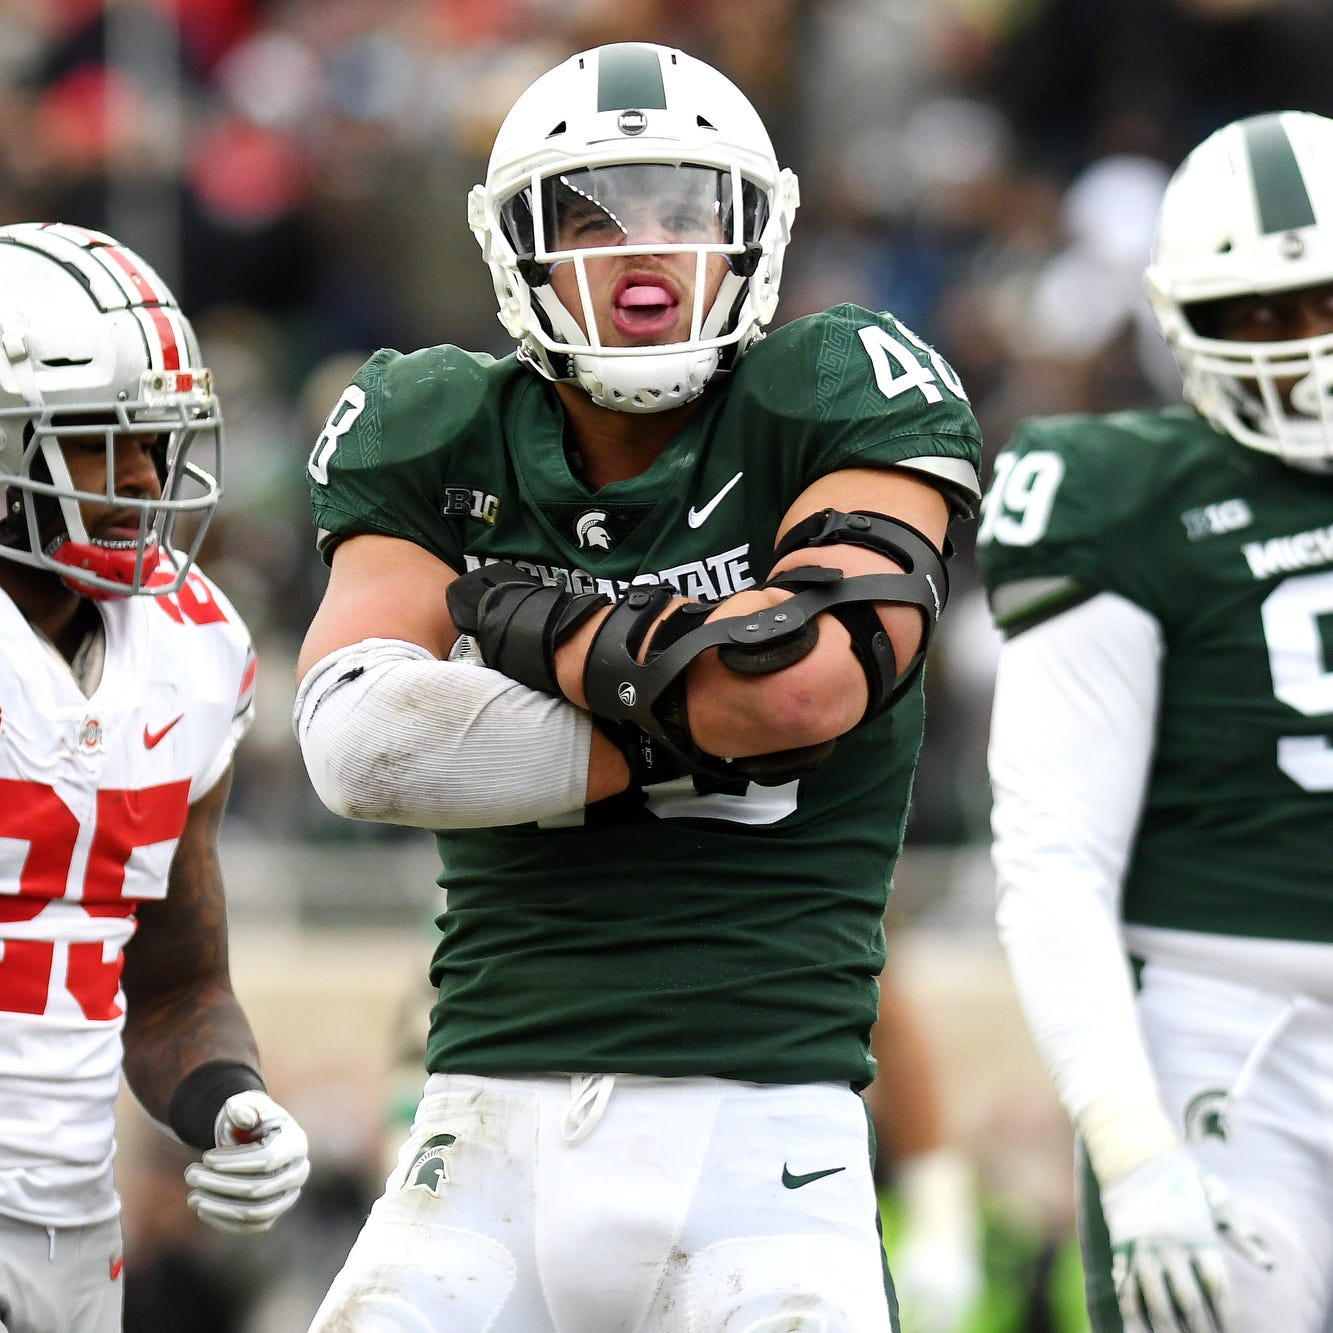 Michigan State football returns nation's No. 1 run-stopping defensive line intact